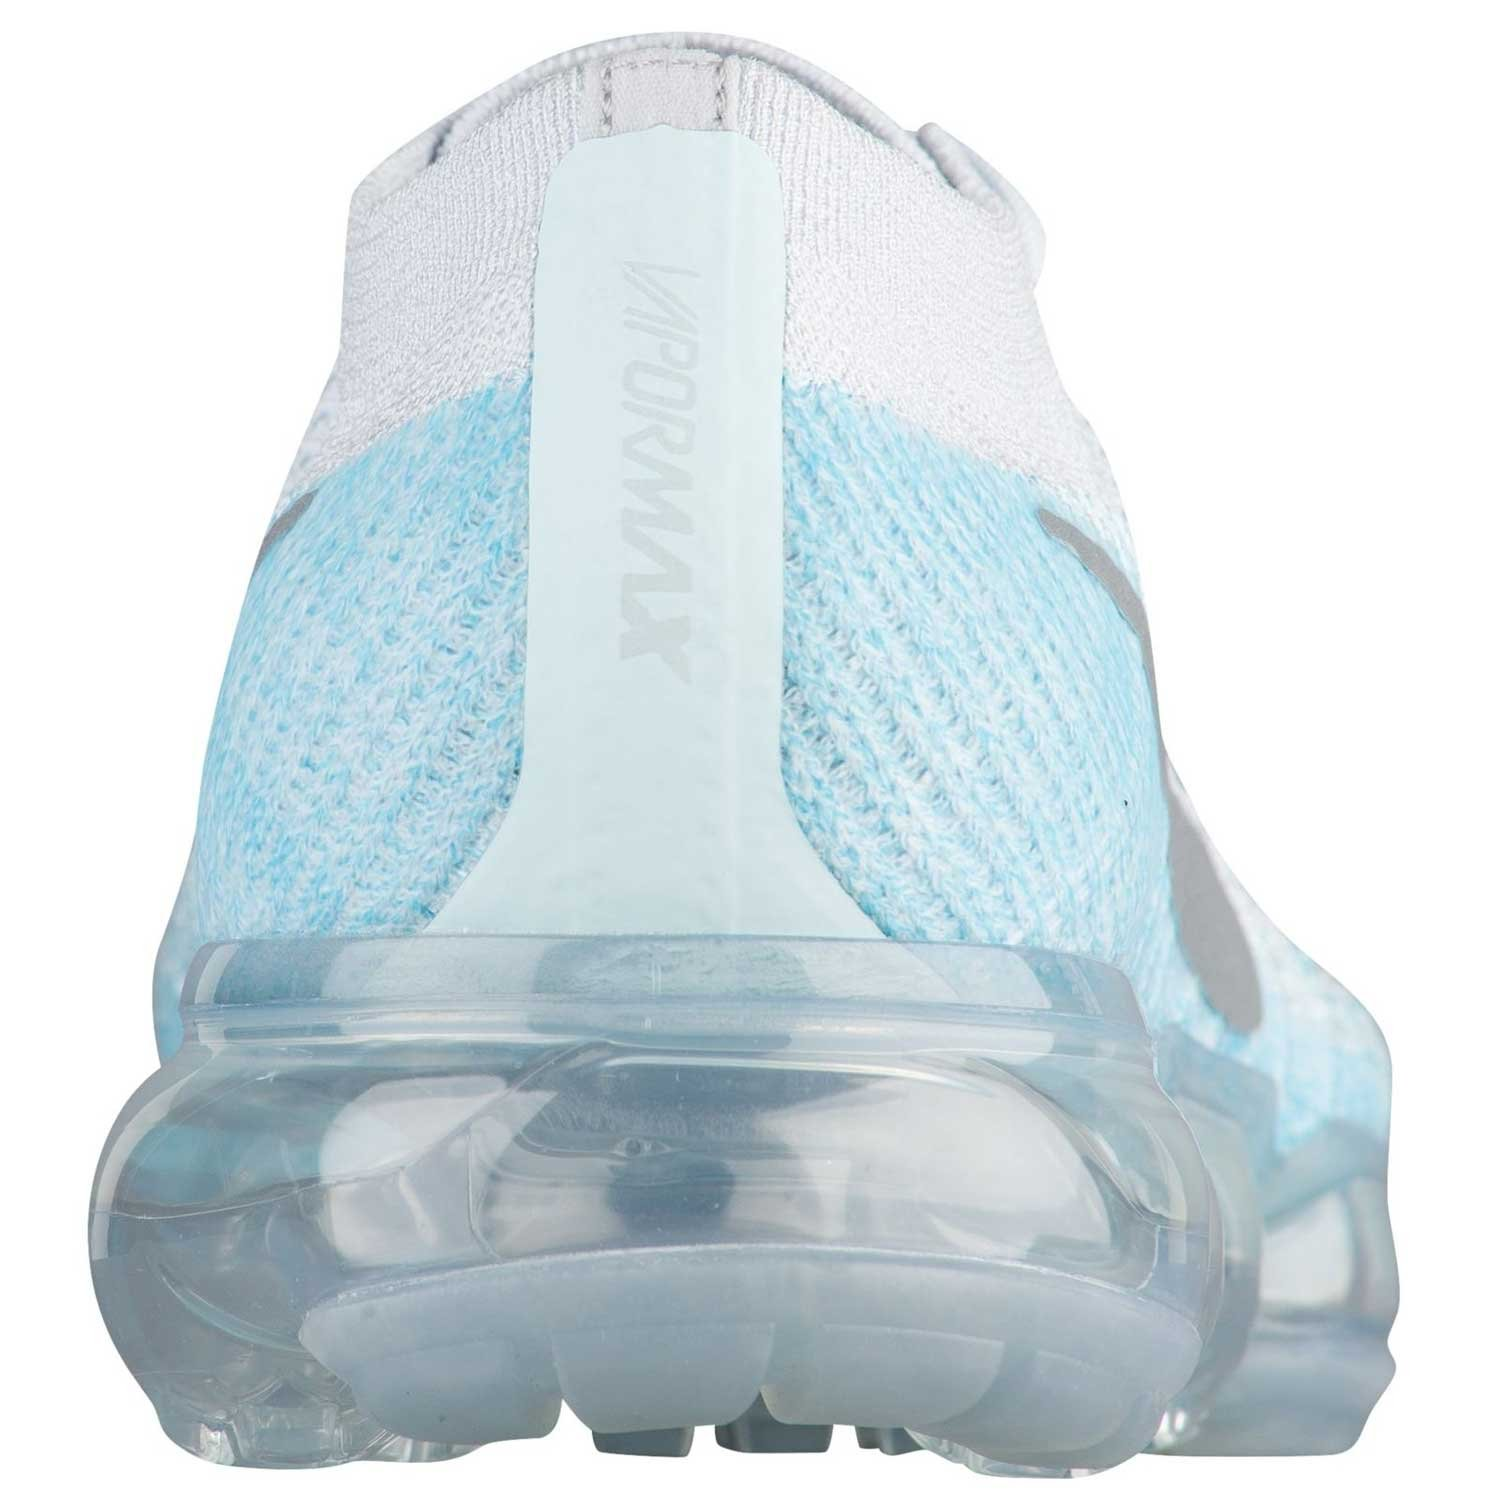 Nike WMNS Air Vapormax Flyknit Ice Flash 849557-014 Platinum Blue Women s Running Shoes